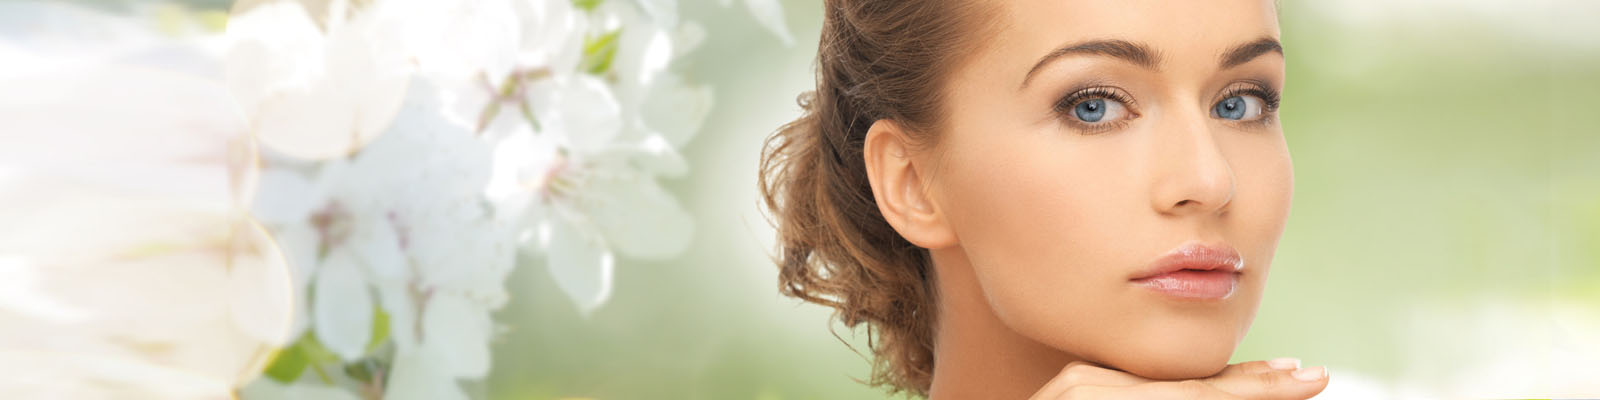 Facial Plastic Surgery by Dr. David Csikai in Jacksonville